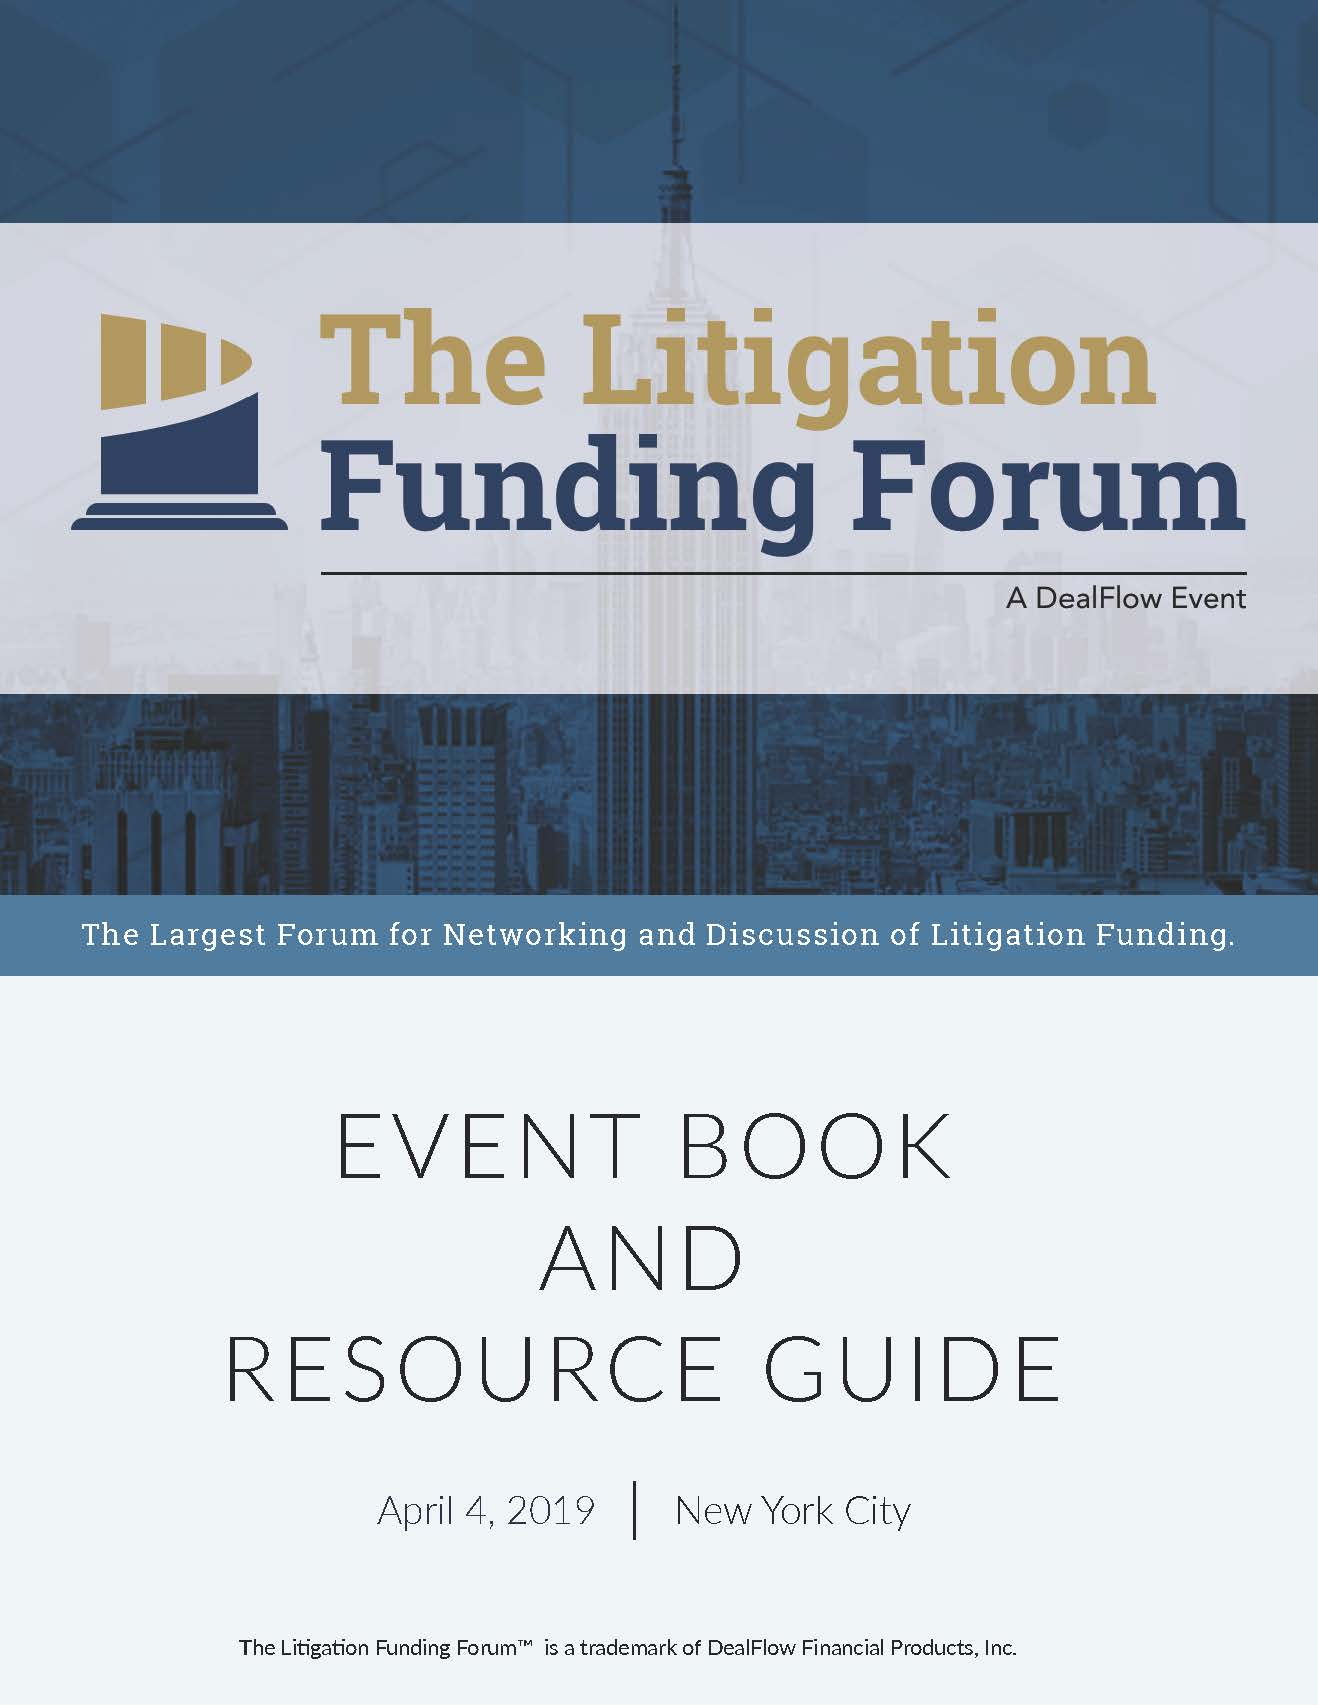 The Litigation Funding Forum